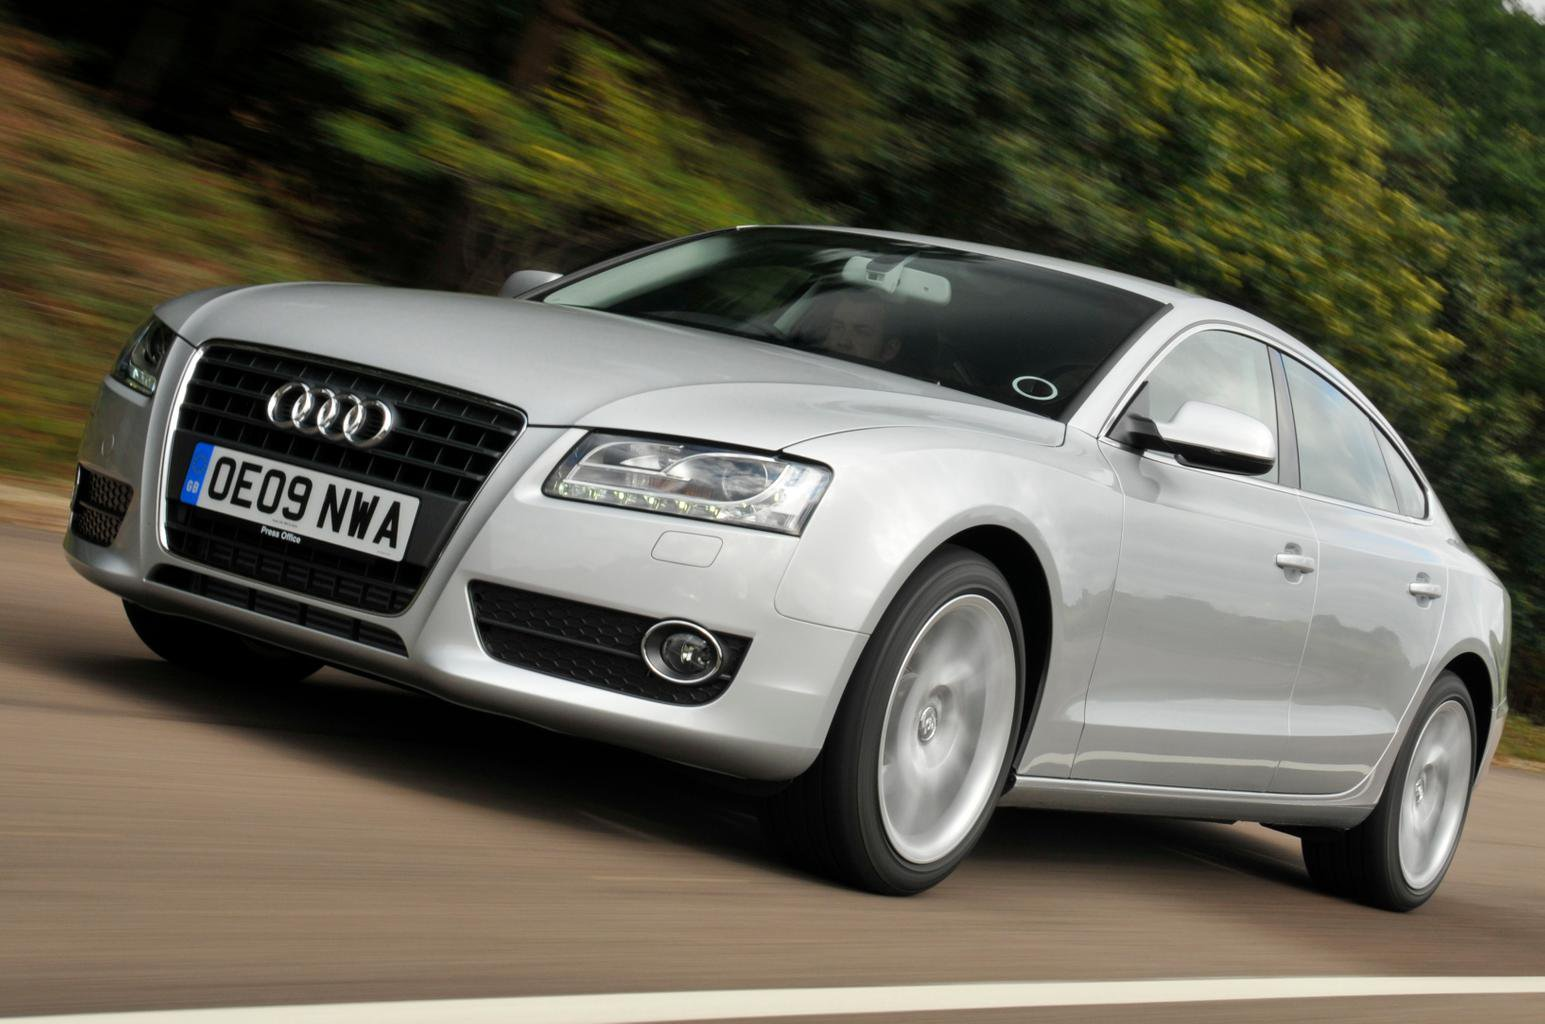 Used test: Audi A5 Sportback vs BMW 3 Series vs Mercedes C-class vs Volkswagen Passat CC